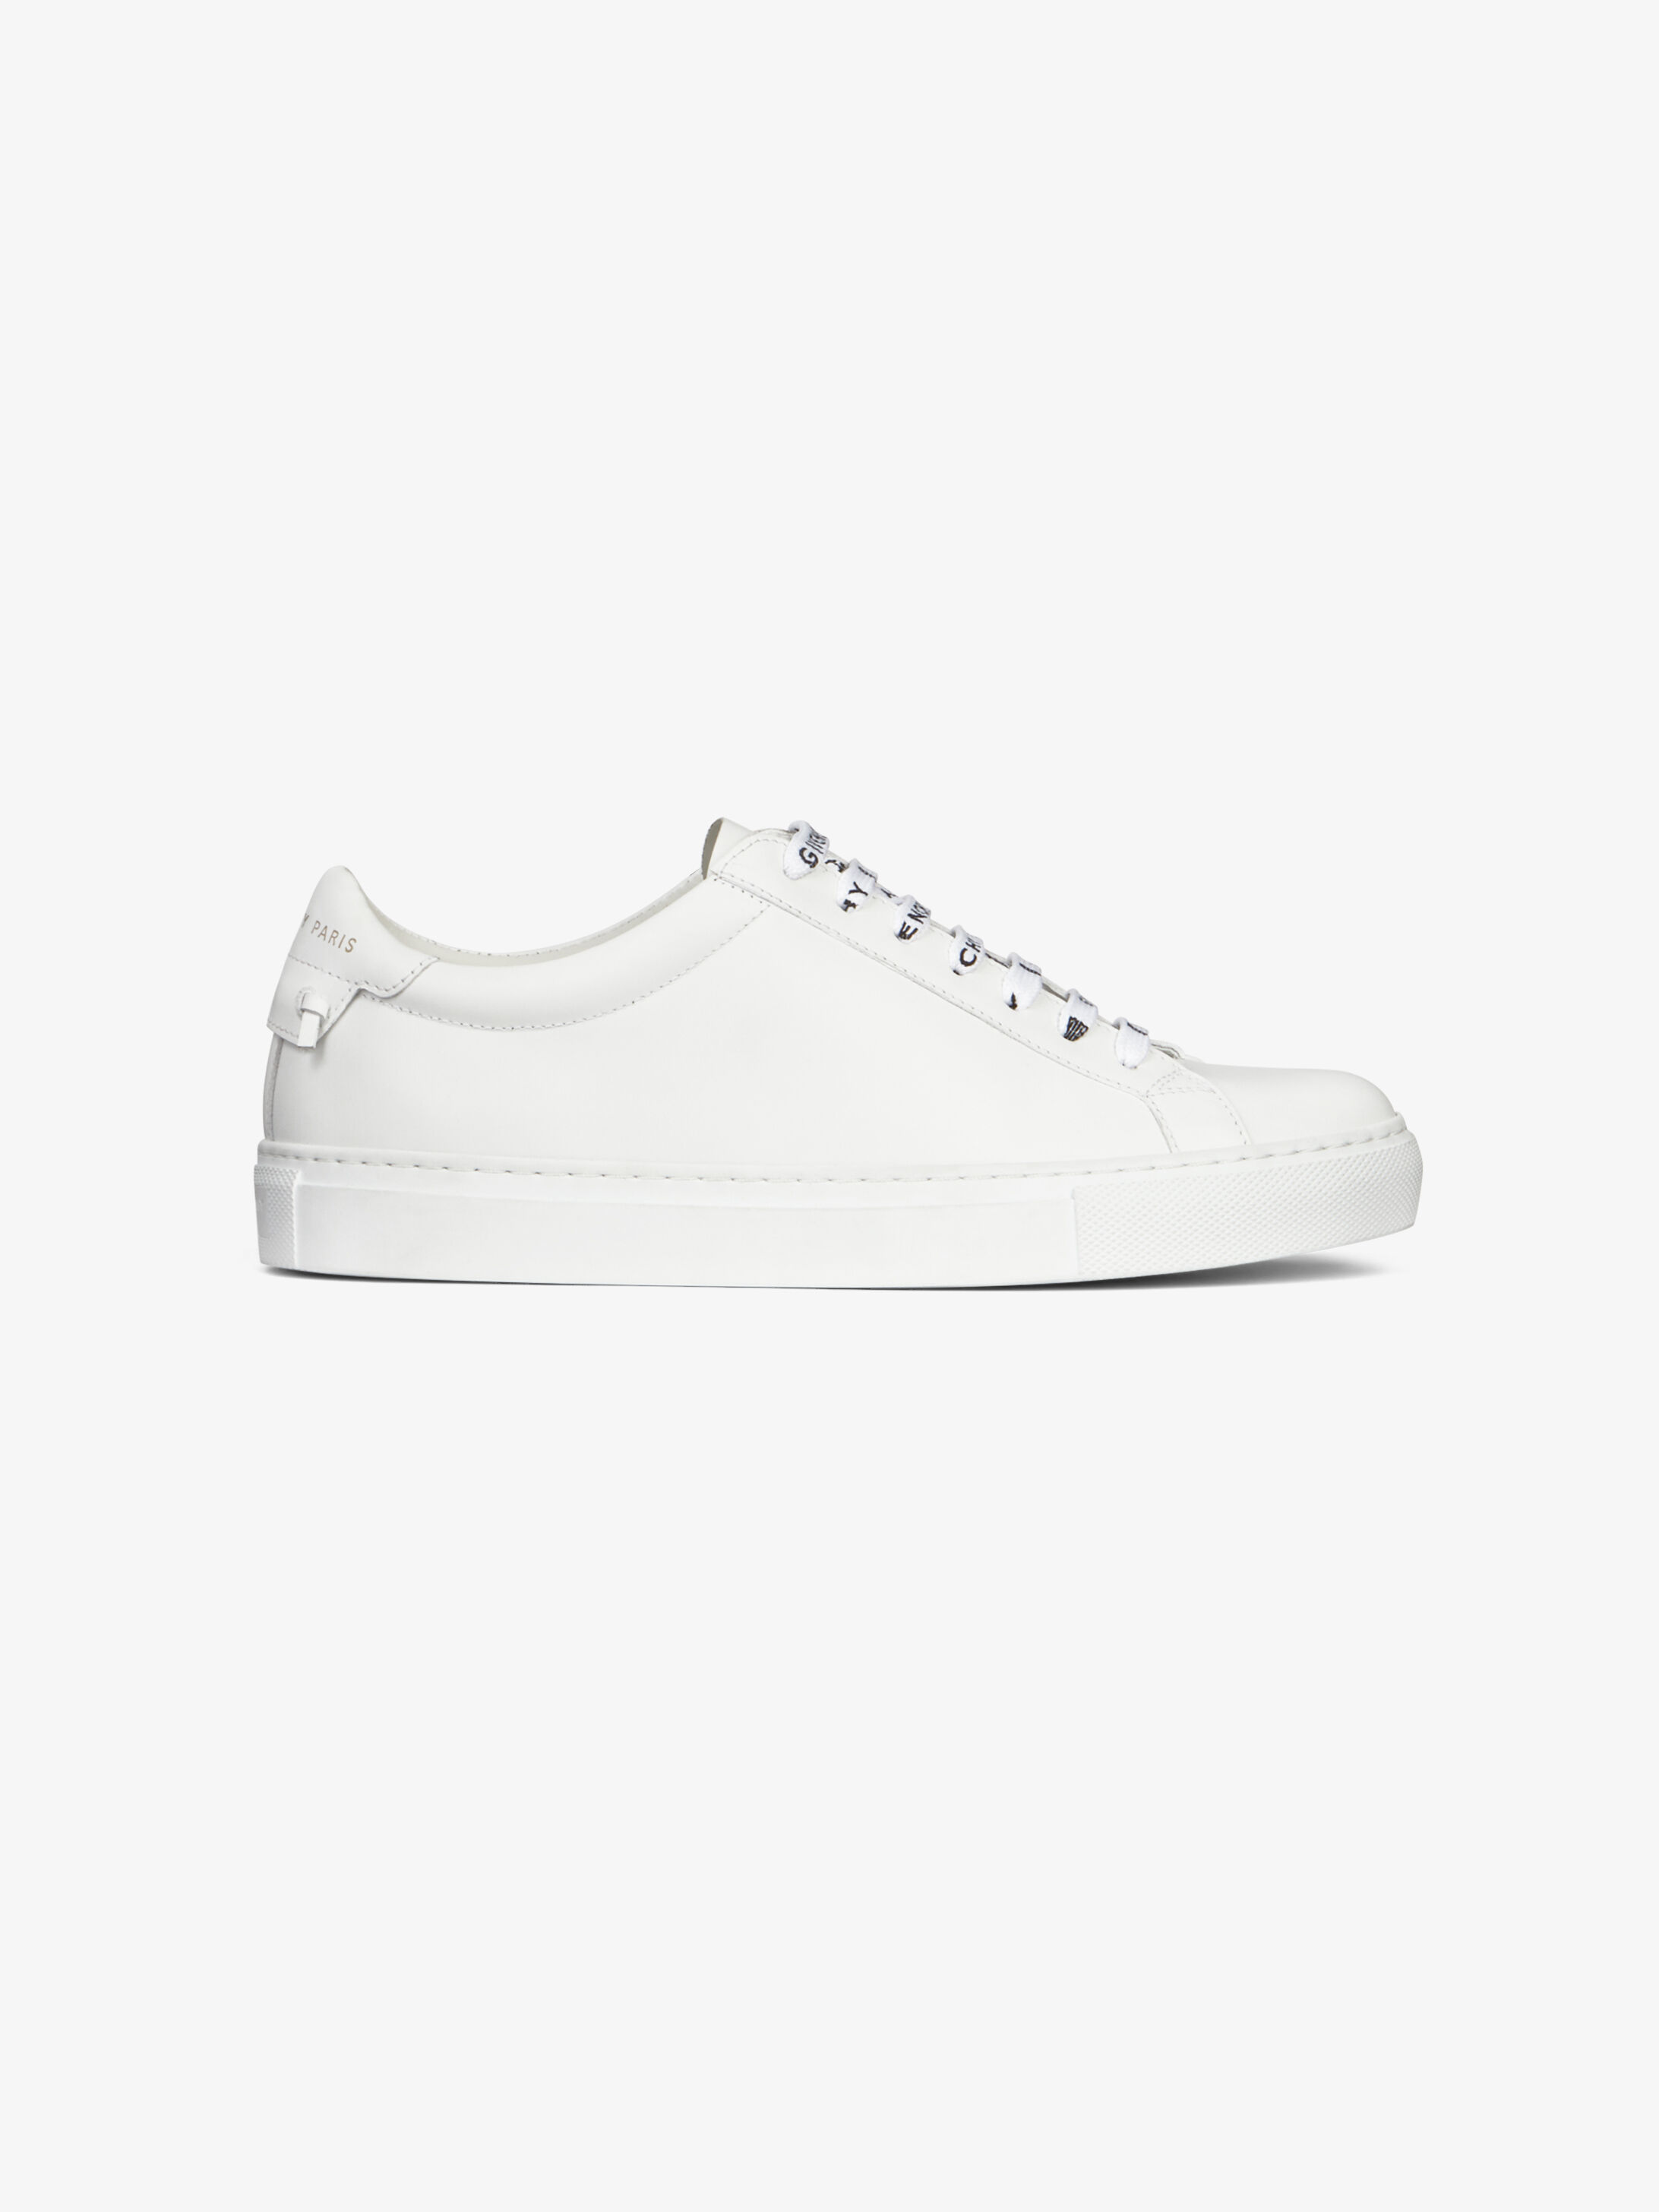 GivenchyGivenchy Paris By Sneakers Women's Collection 3AjL5Sc4Rq